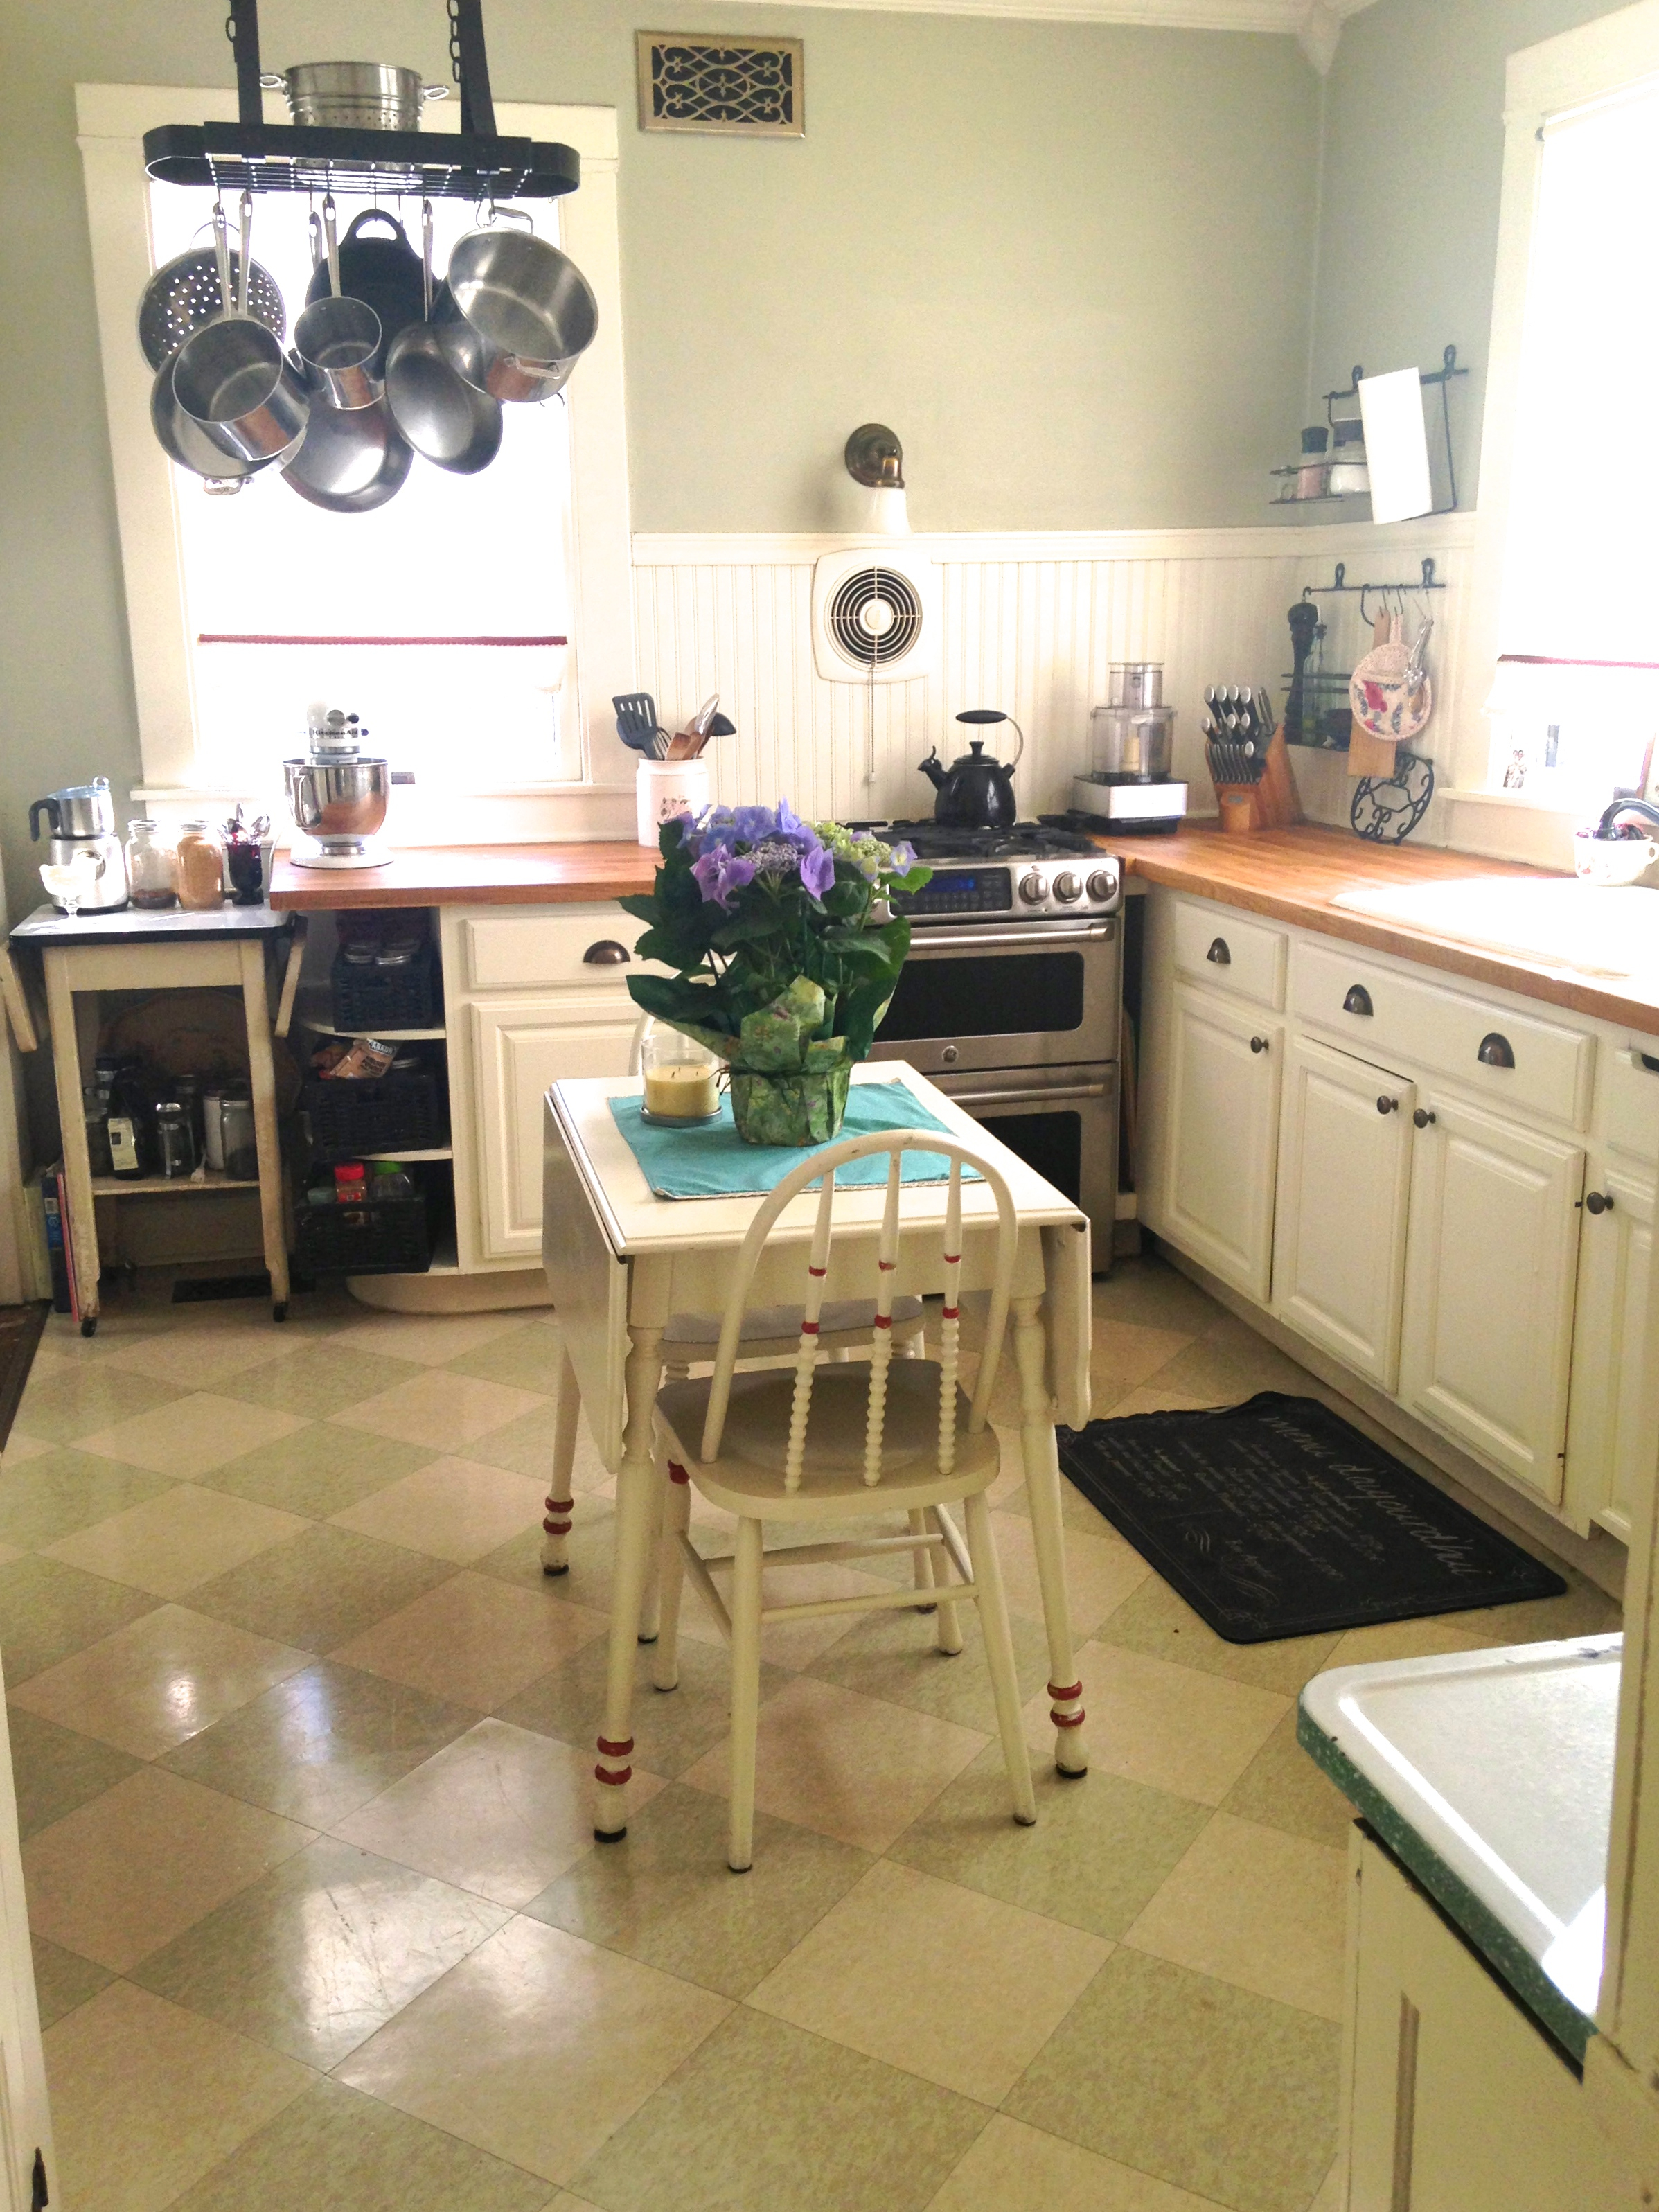 10 Things I Love About My Small Kitchen The Catholic Table